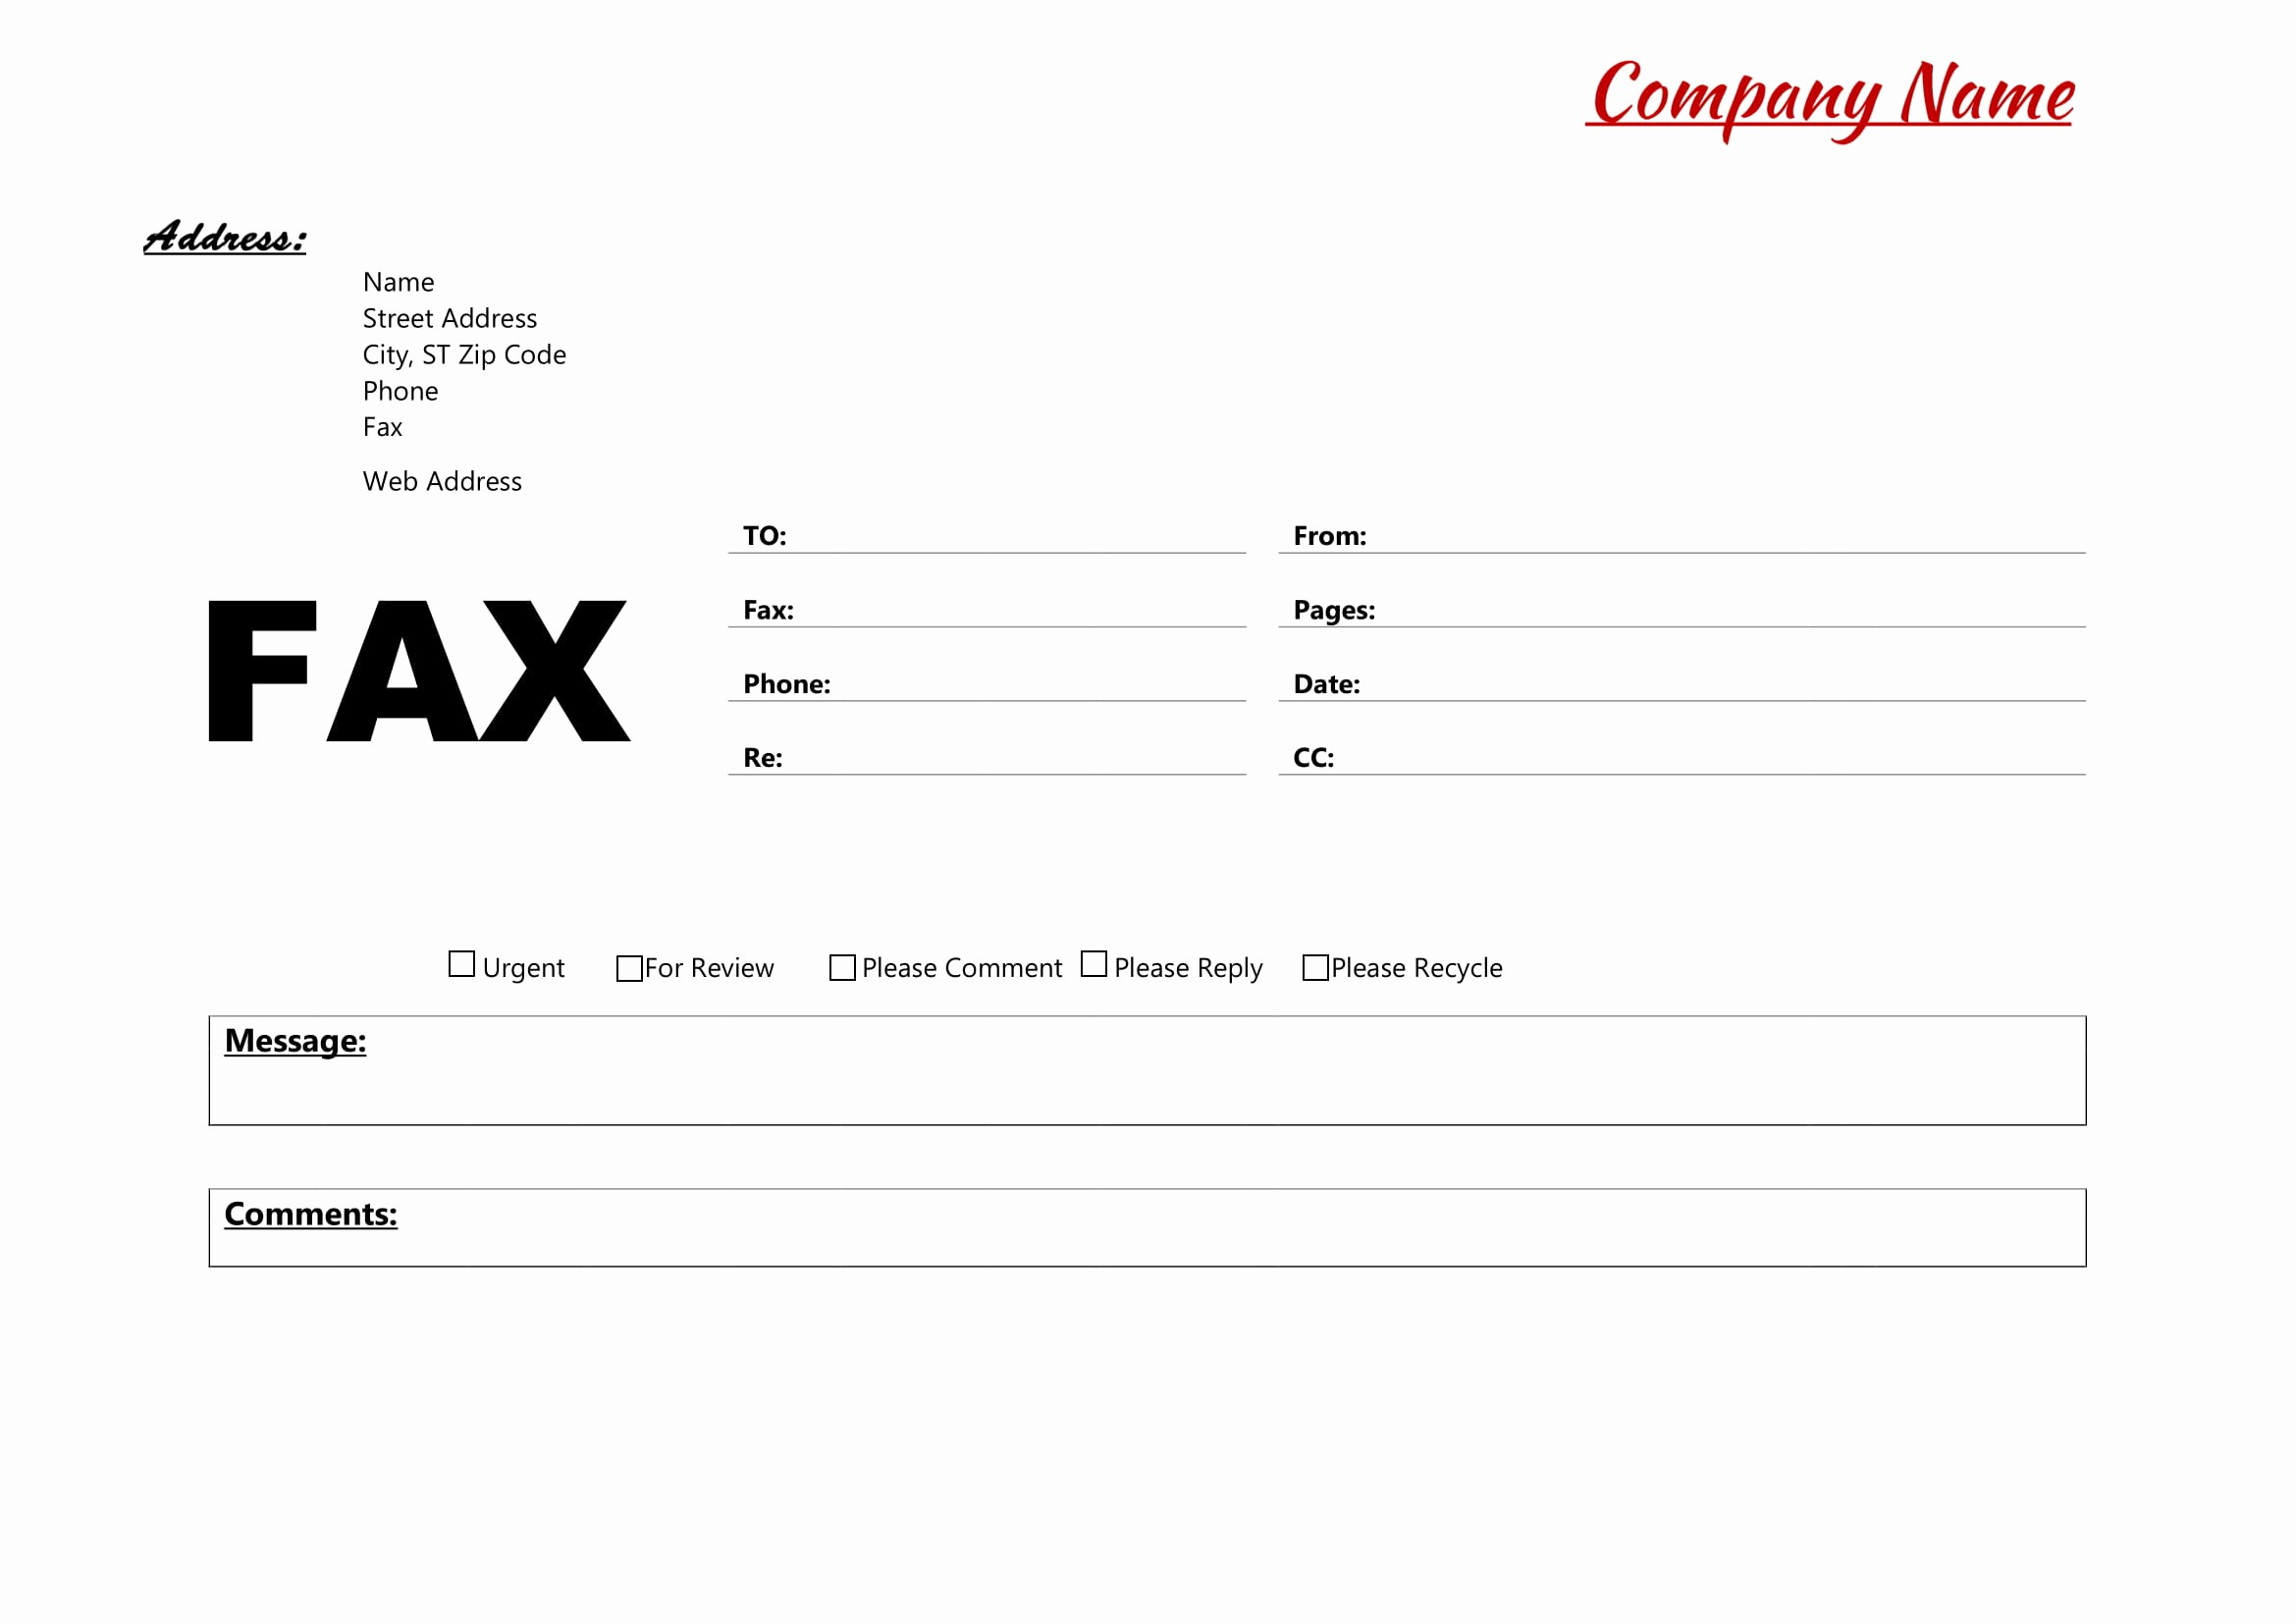 Fillable Fax Cover Sheet Template Luxury Fax Cover Sheet Template Page Sample Pdf Standard Free